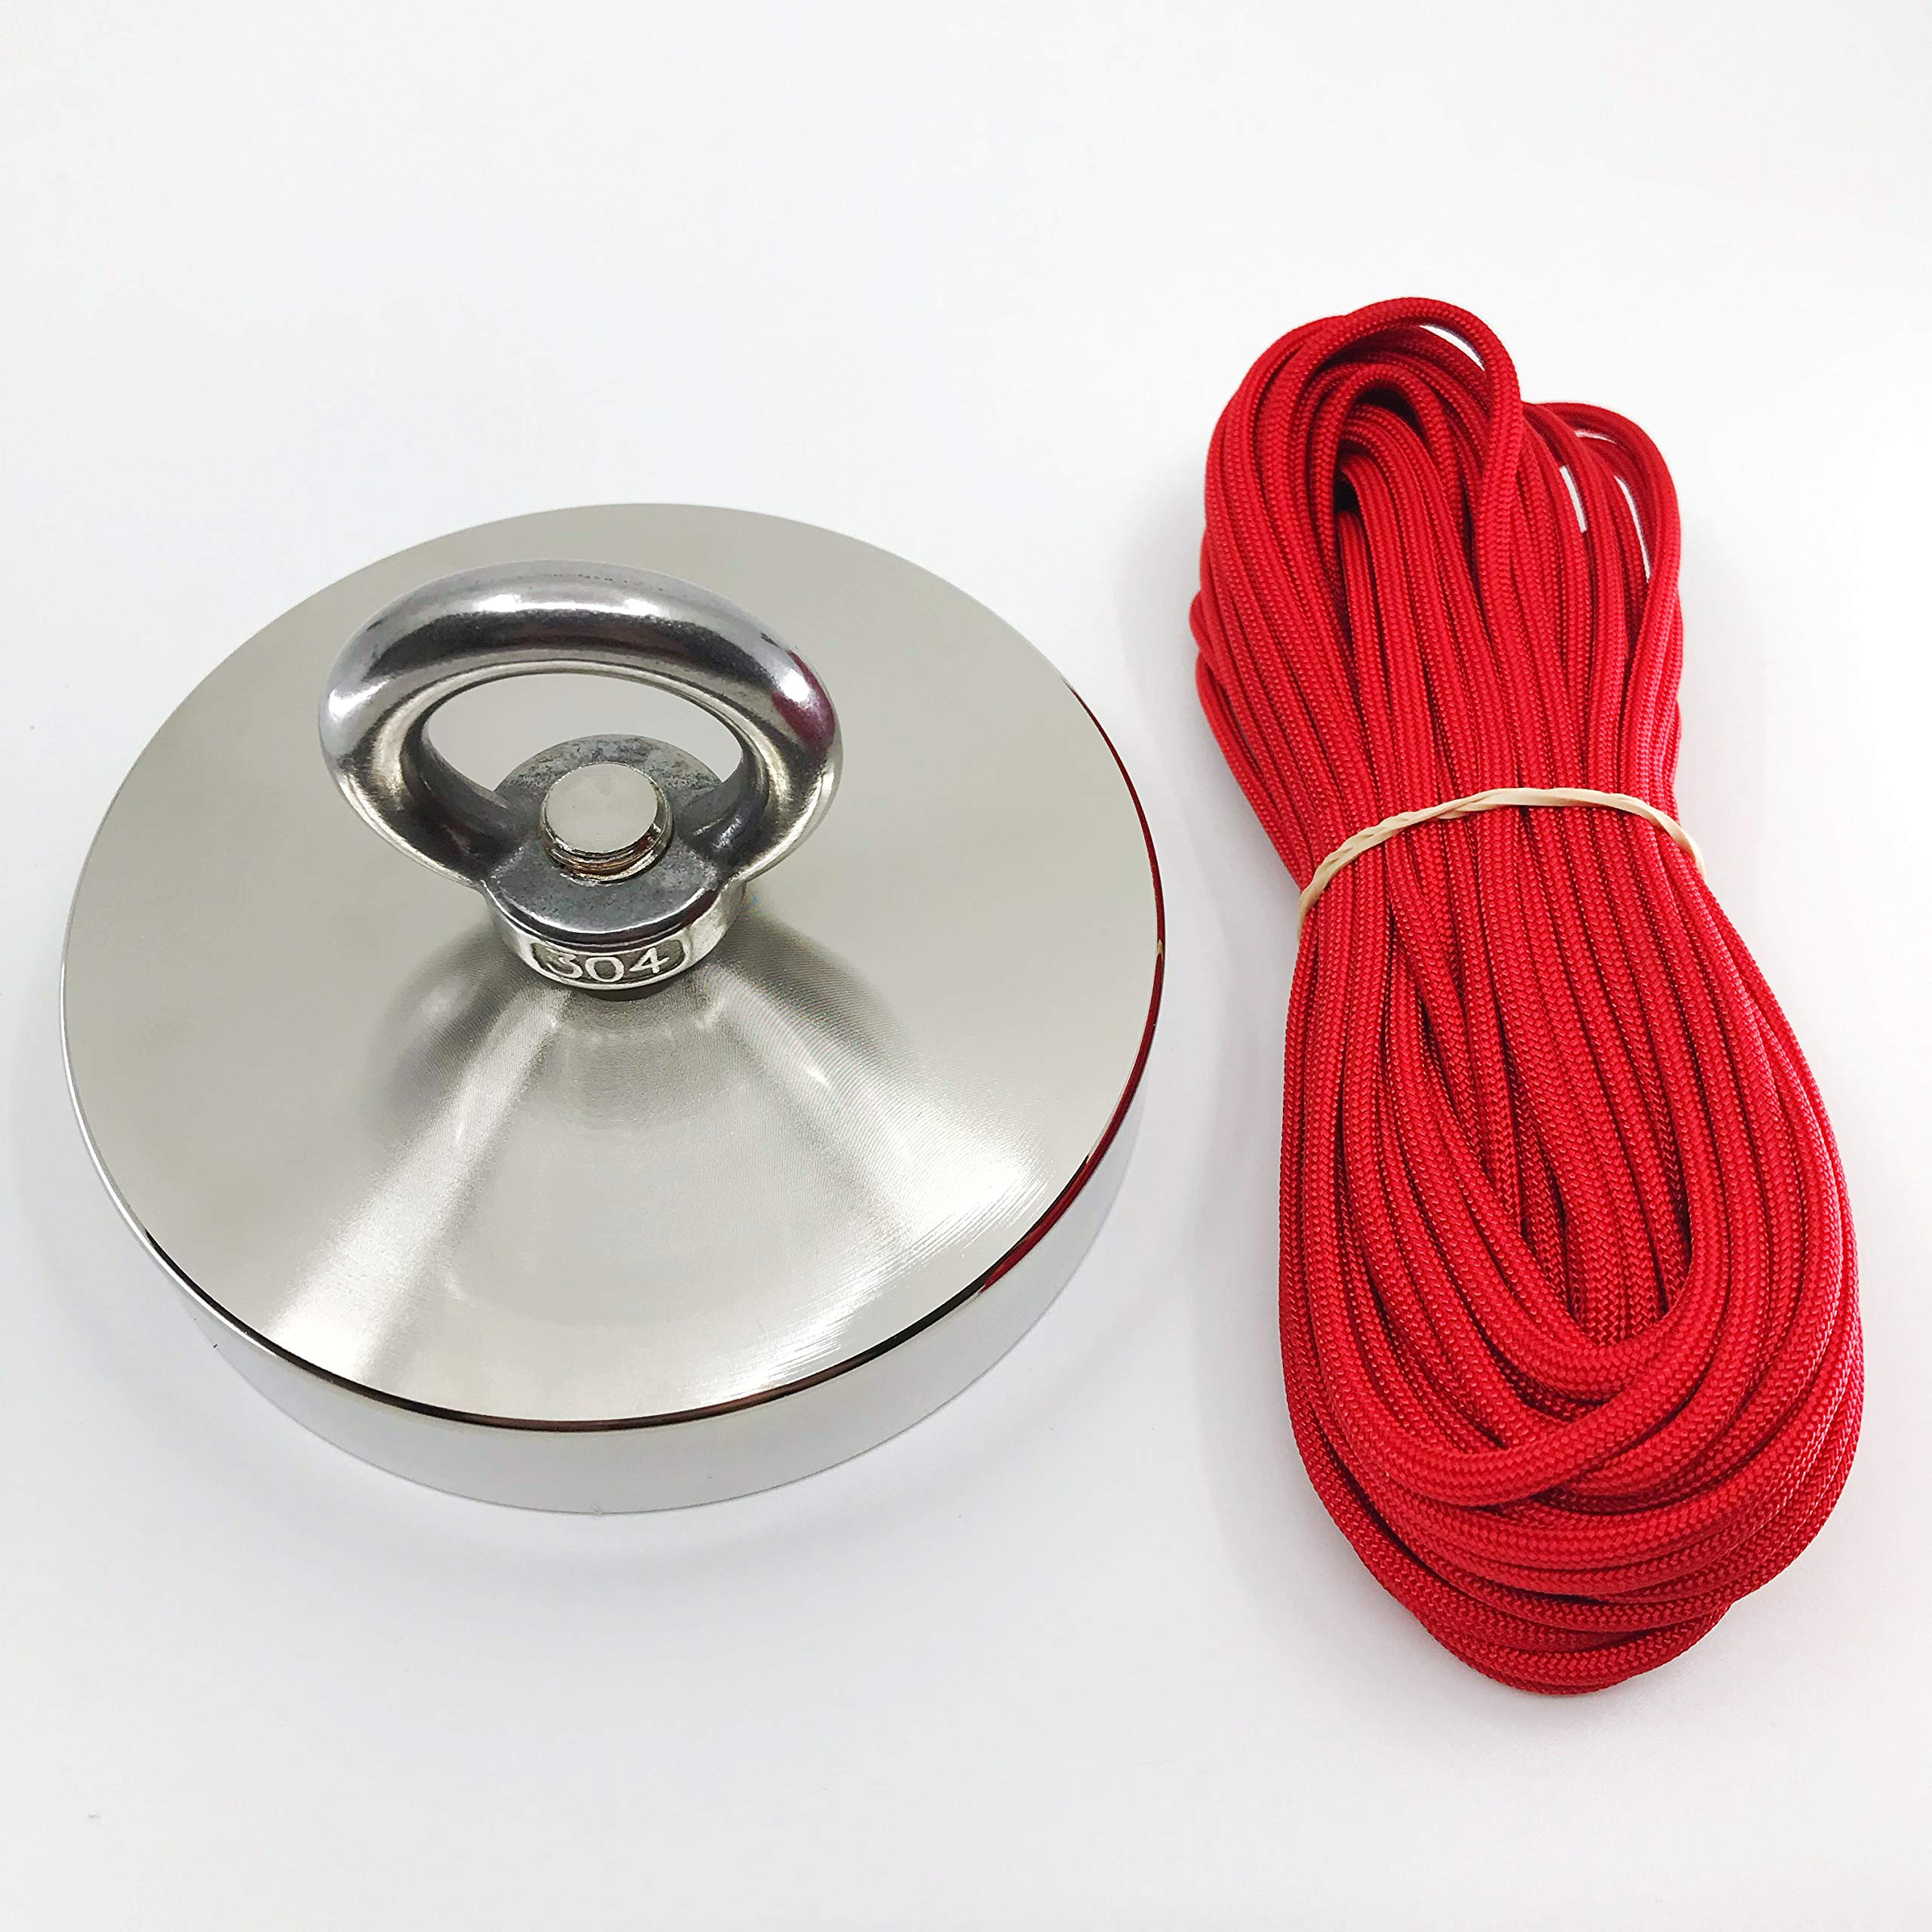 1300 LB Magnet Fishing by Savage Magnets - 50 feet 550lb Tested Paracord Included Treasure Hunting Retrieving and Lifting River and Salvage Recovery- Heavy Duty Pulling Power Eyebolt - Neodymium